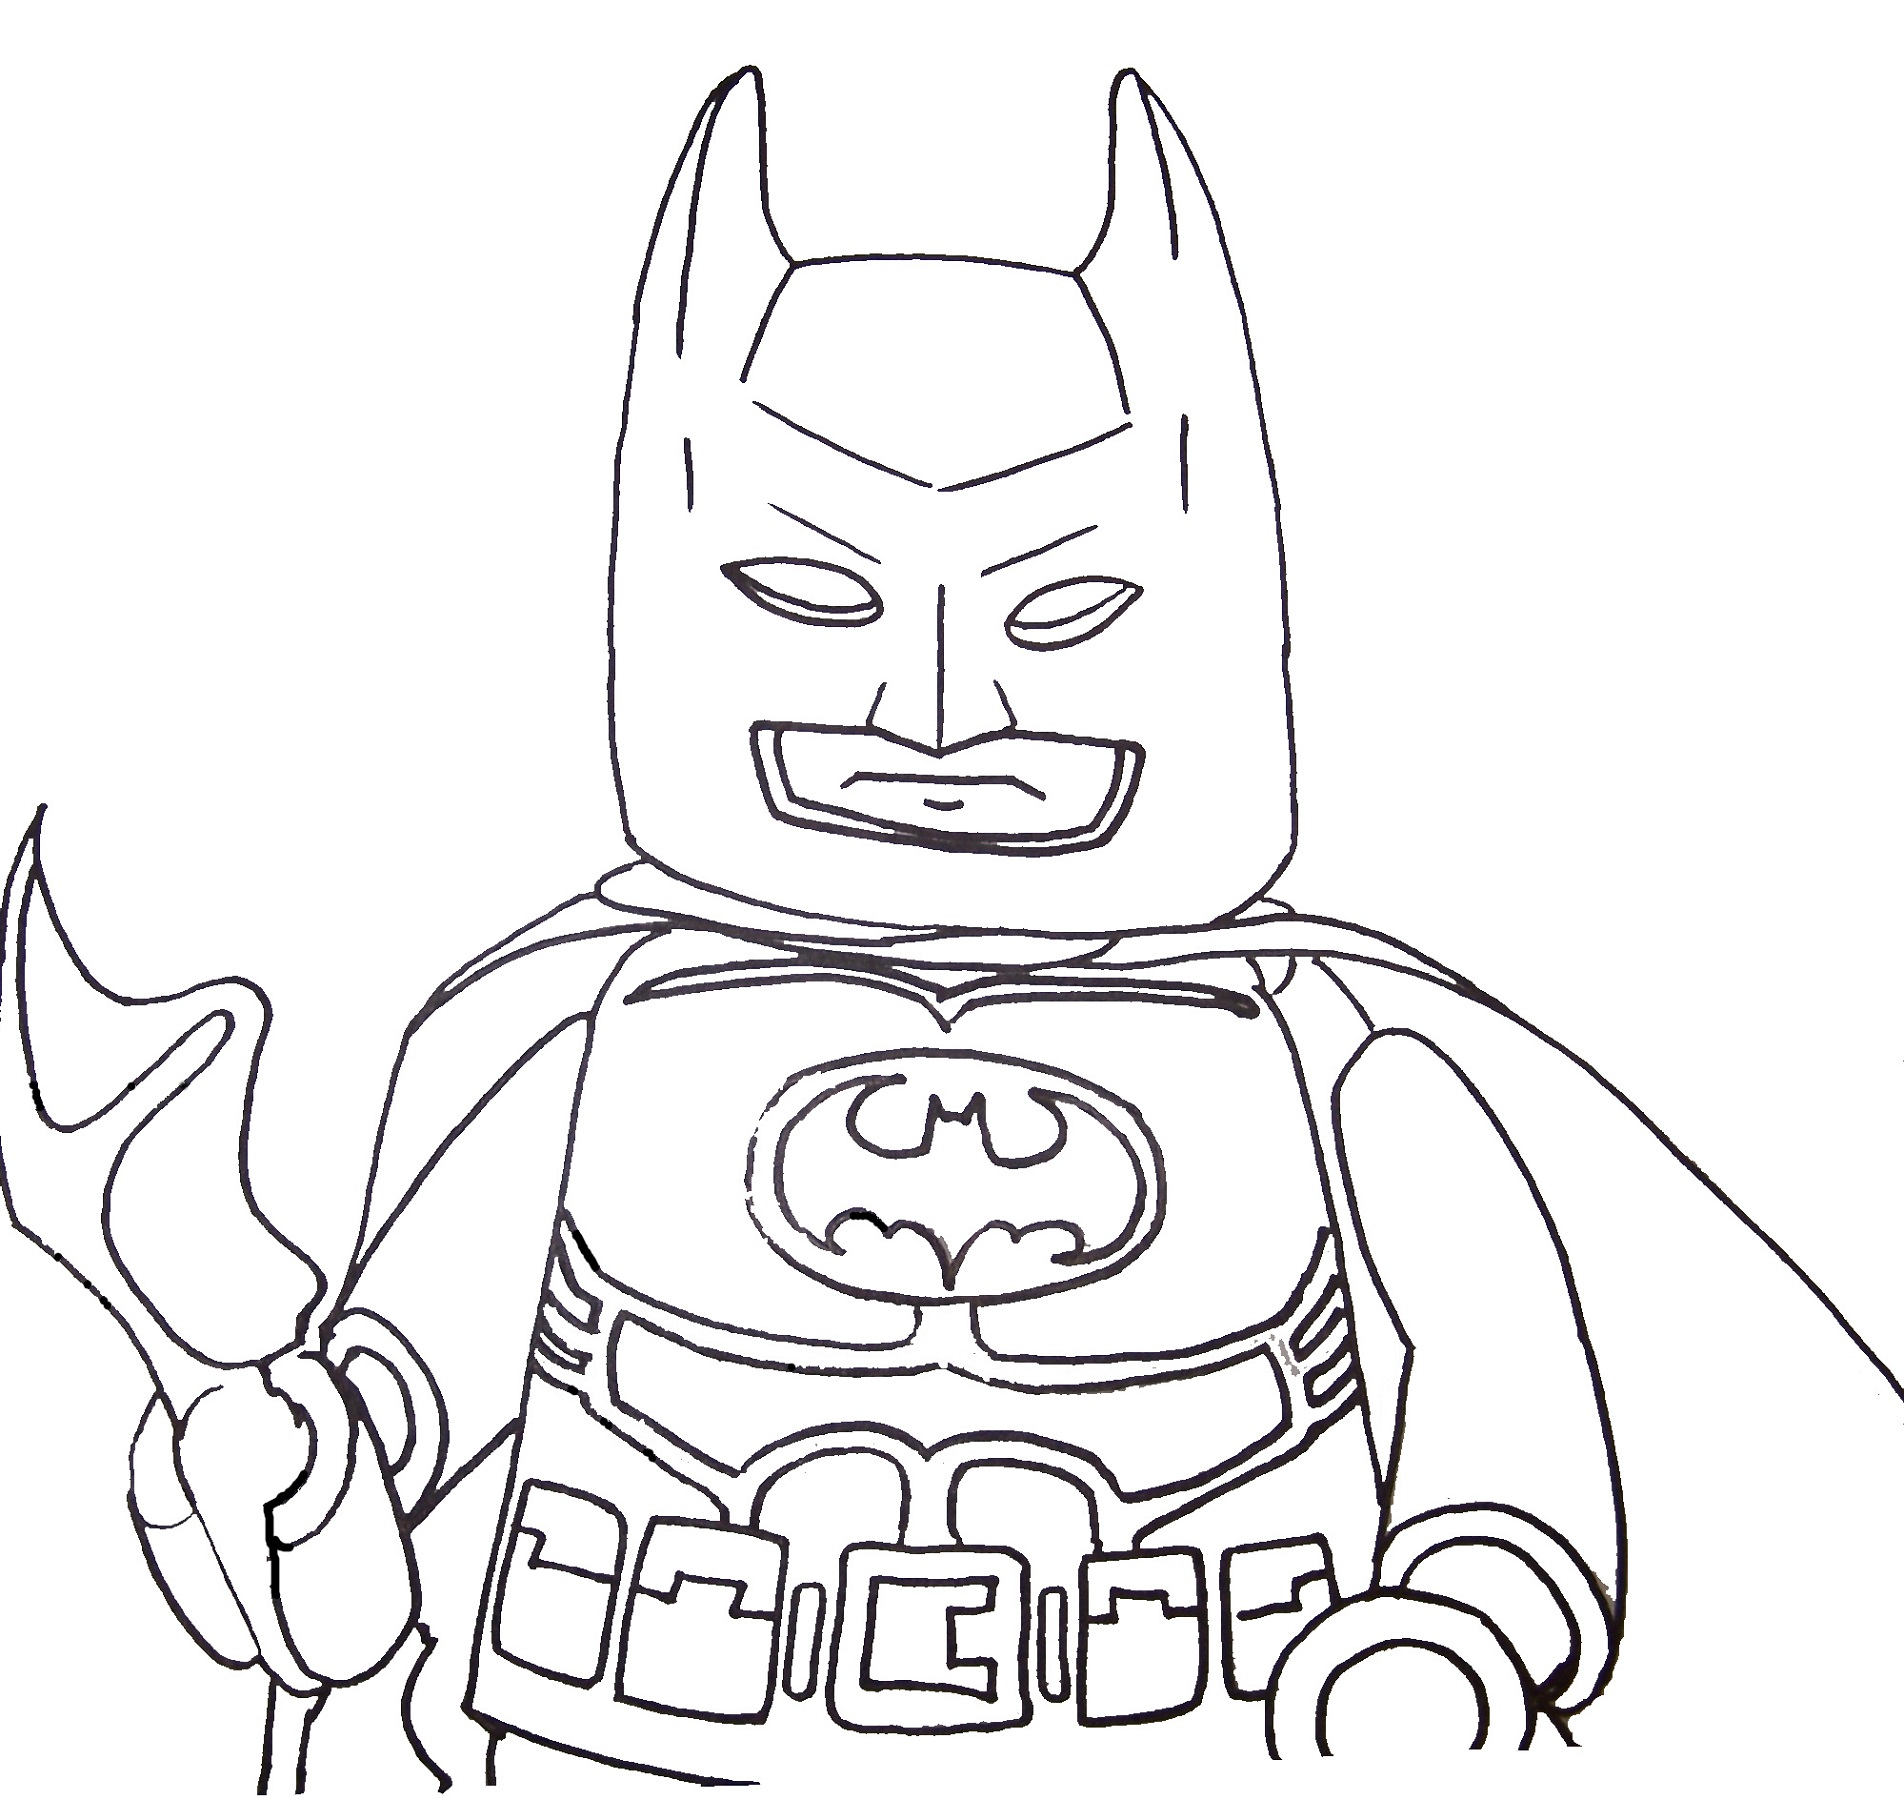 Fun Coloring Pages for Boys